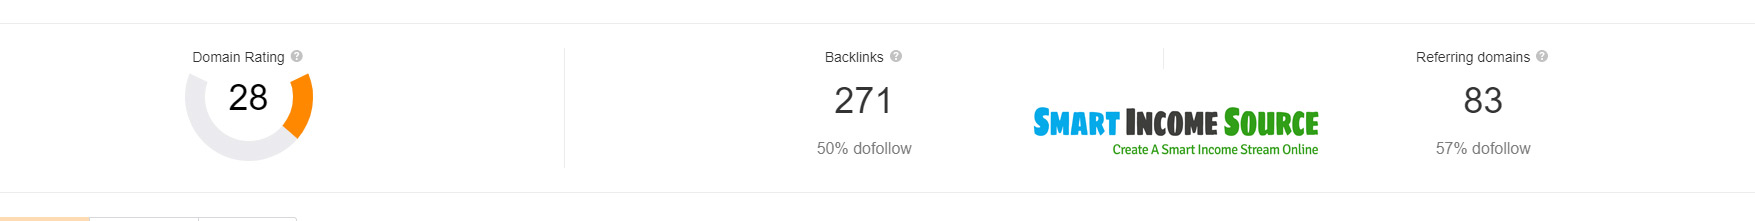 Total Backlinks